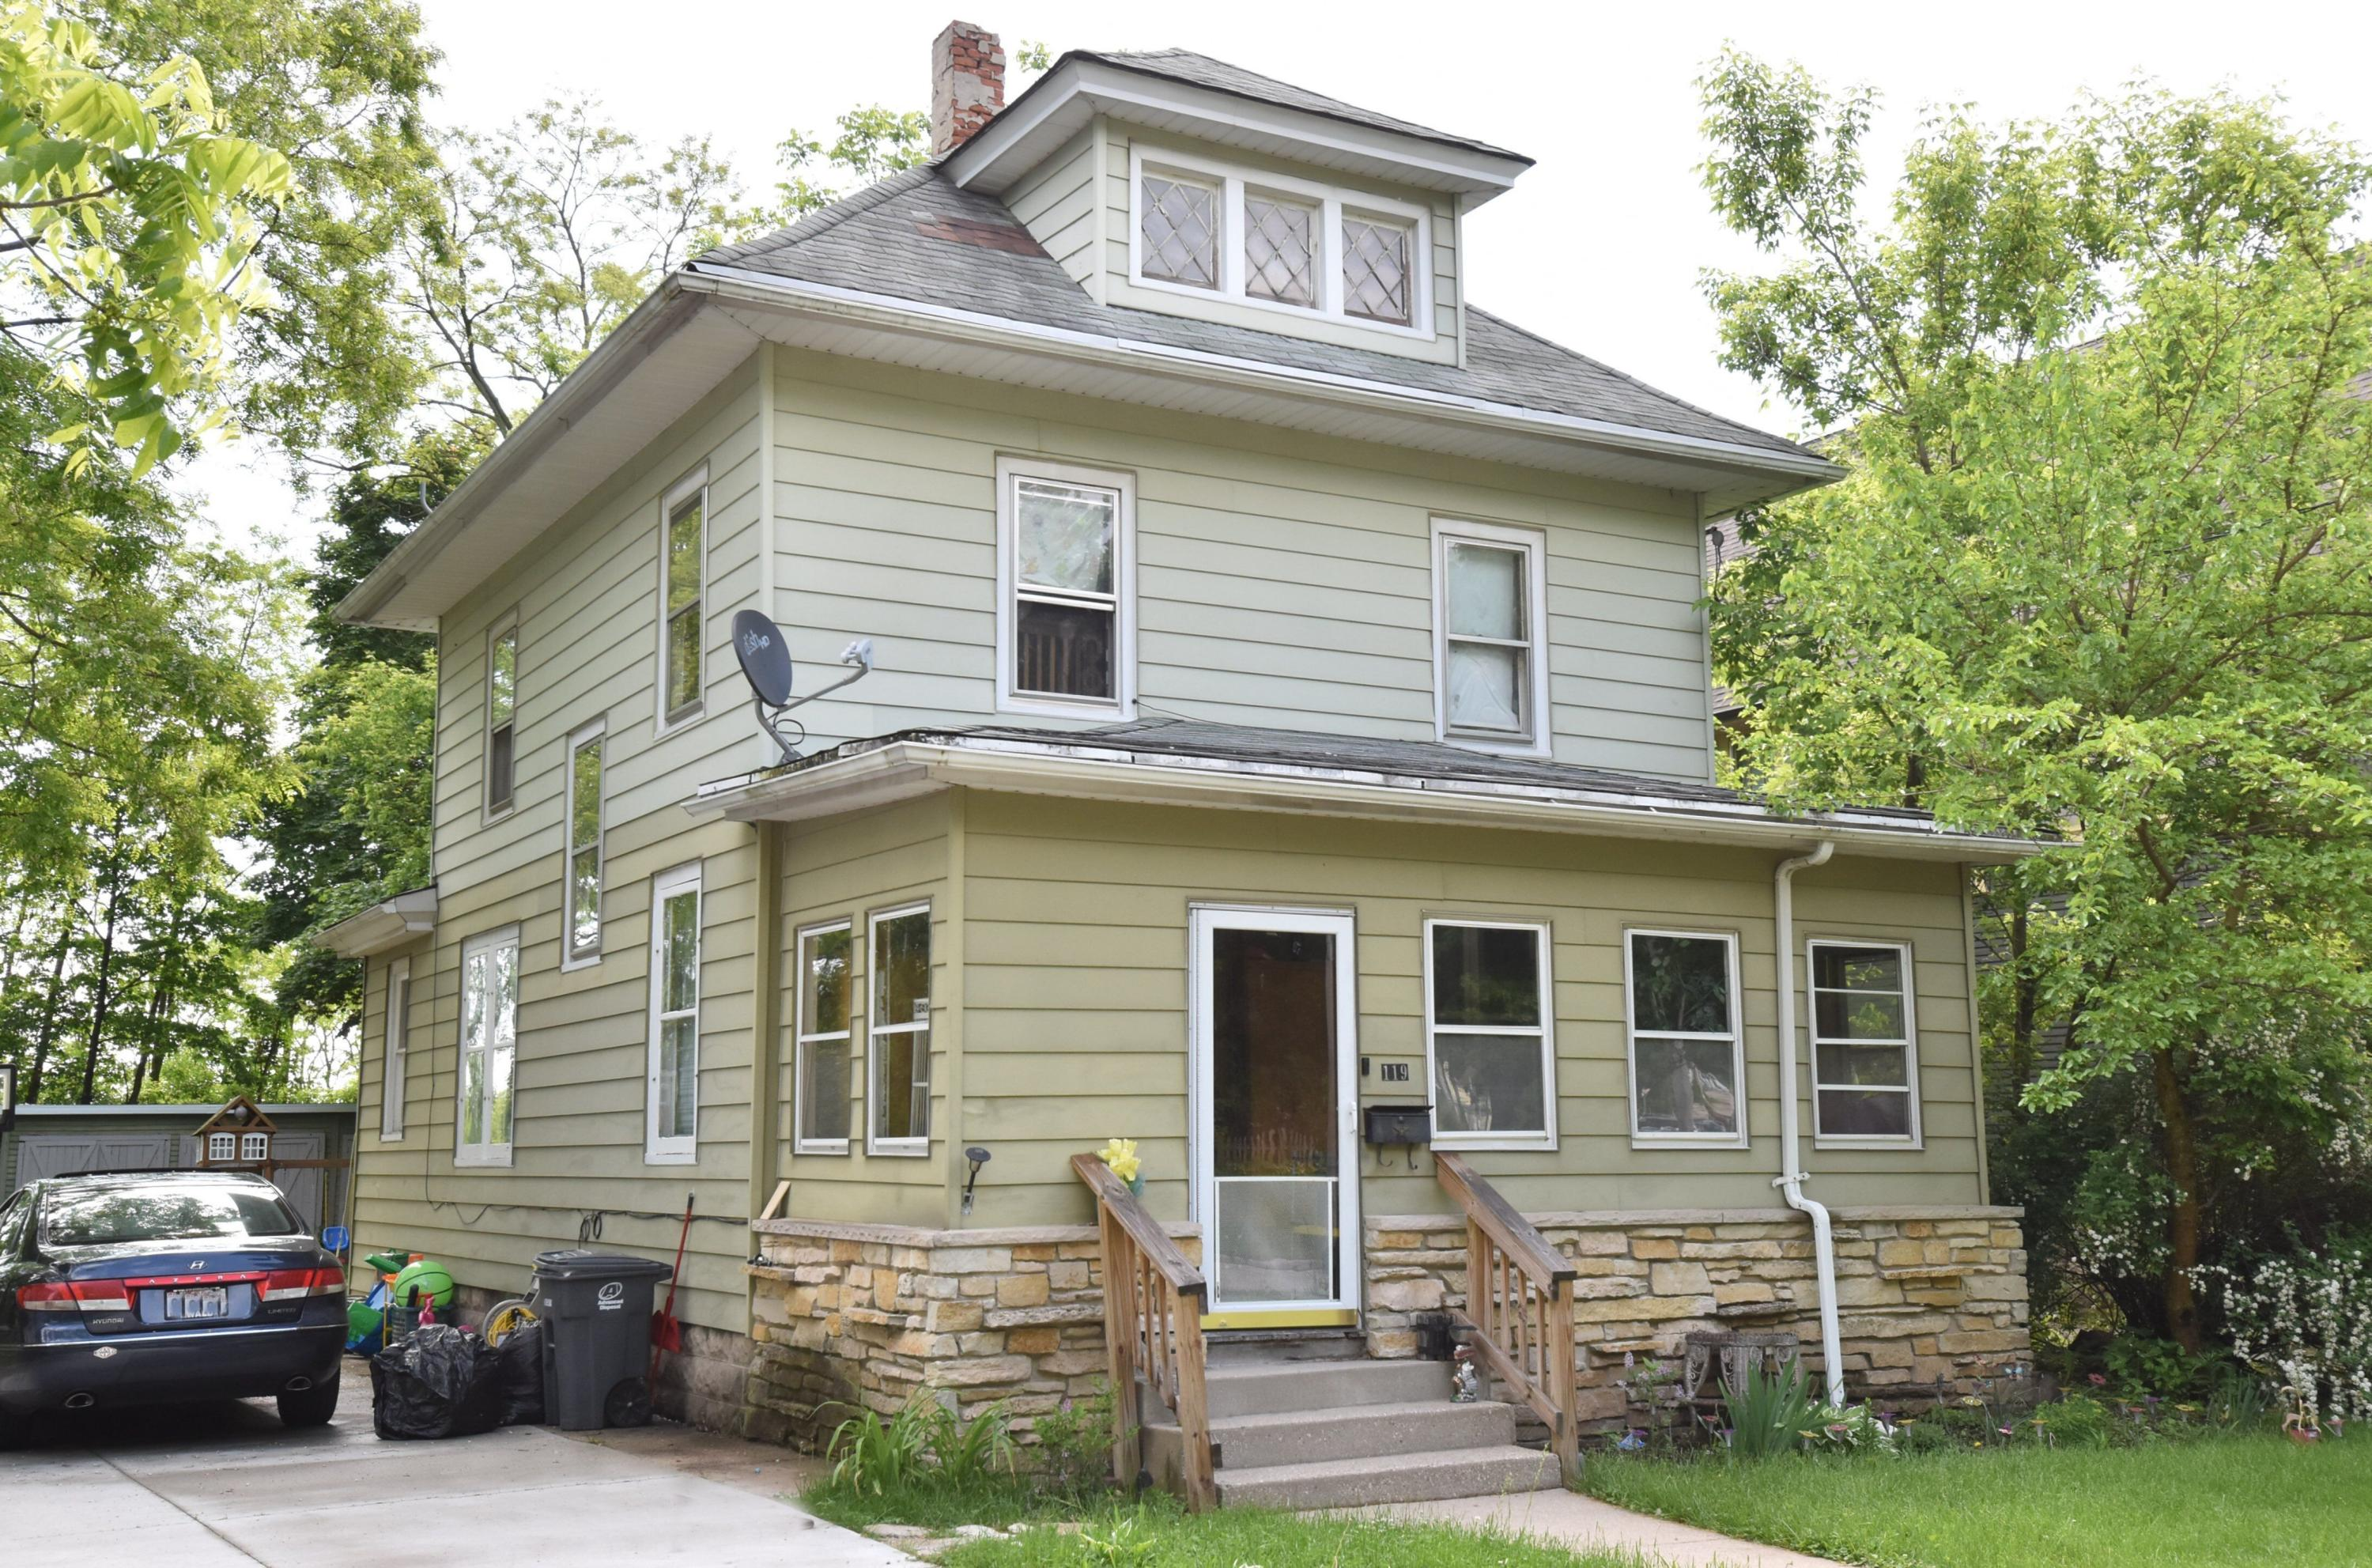 119 Randall St, Waukesha, Wisconsin 53188, 3 Bedrooms Bedrooms, ,1 BathroomBathrooms,Single-Family,For Sale,Randall St,1641241